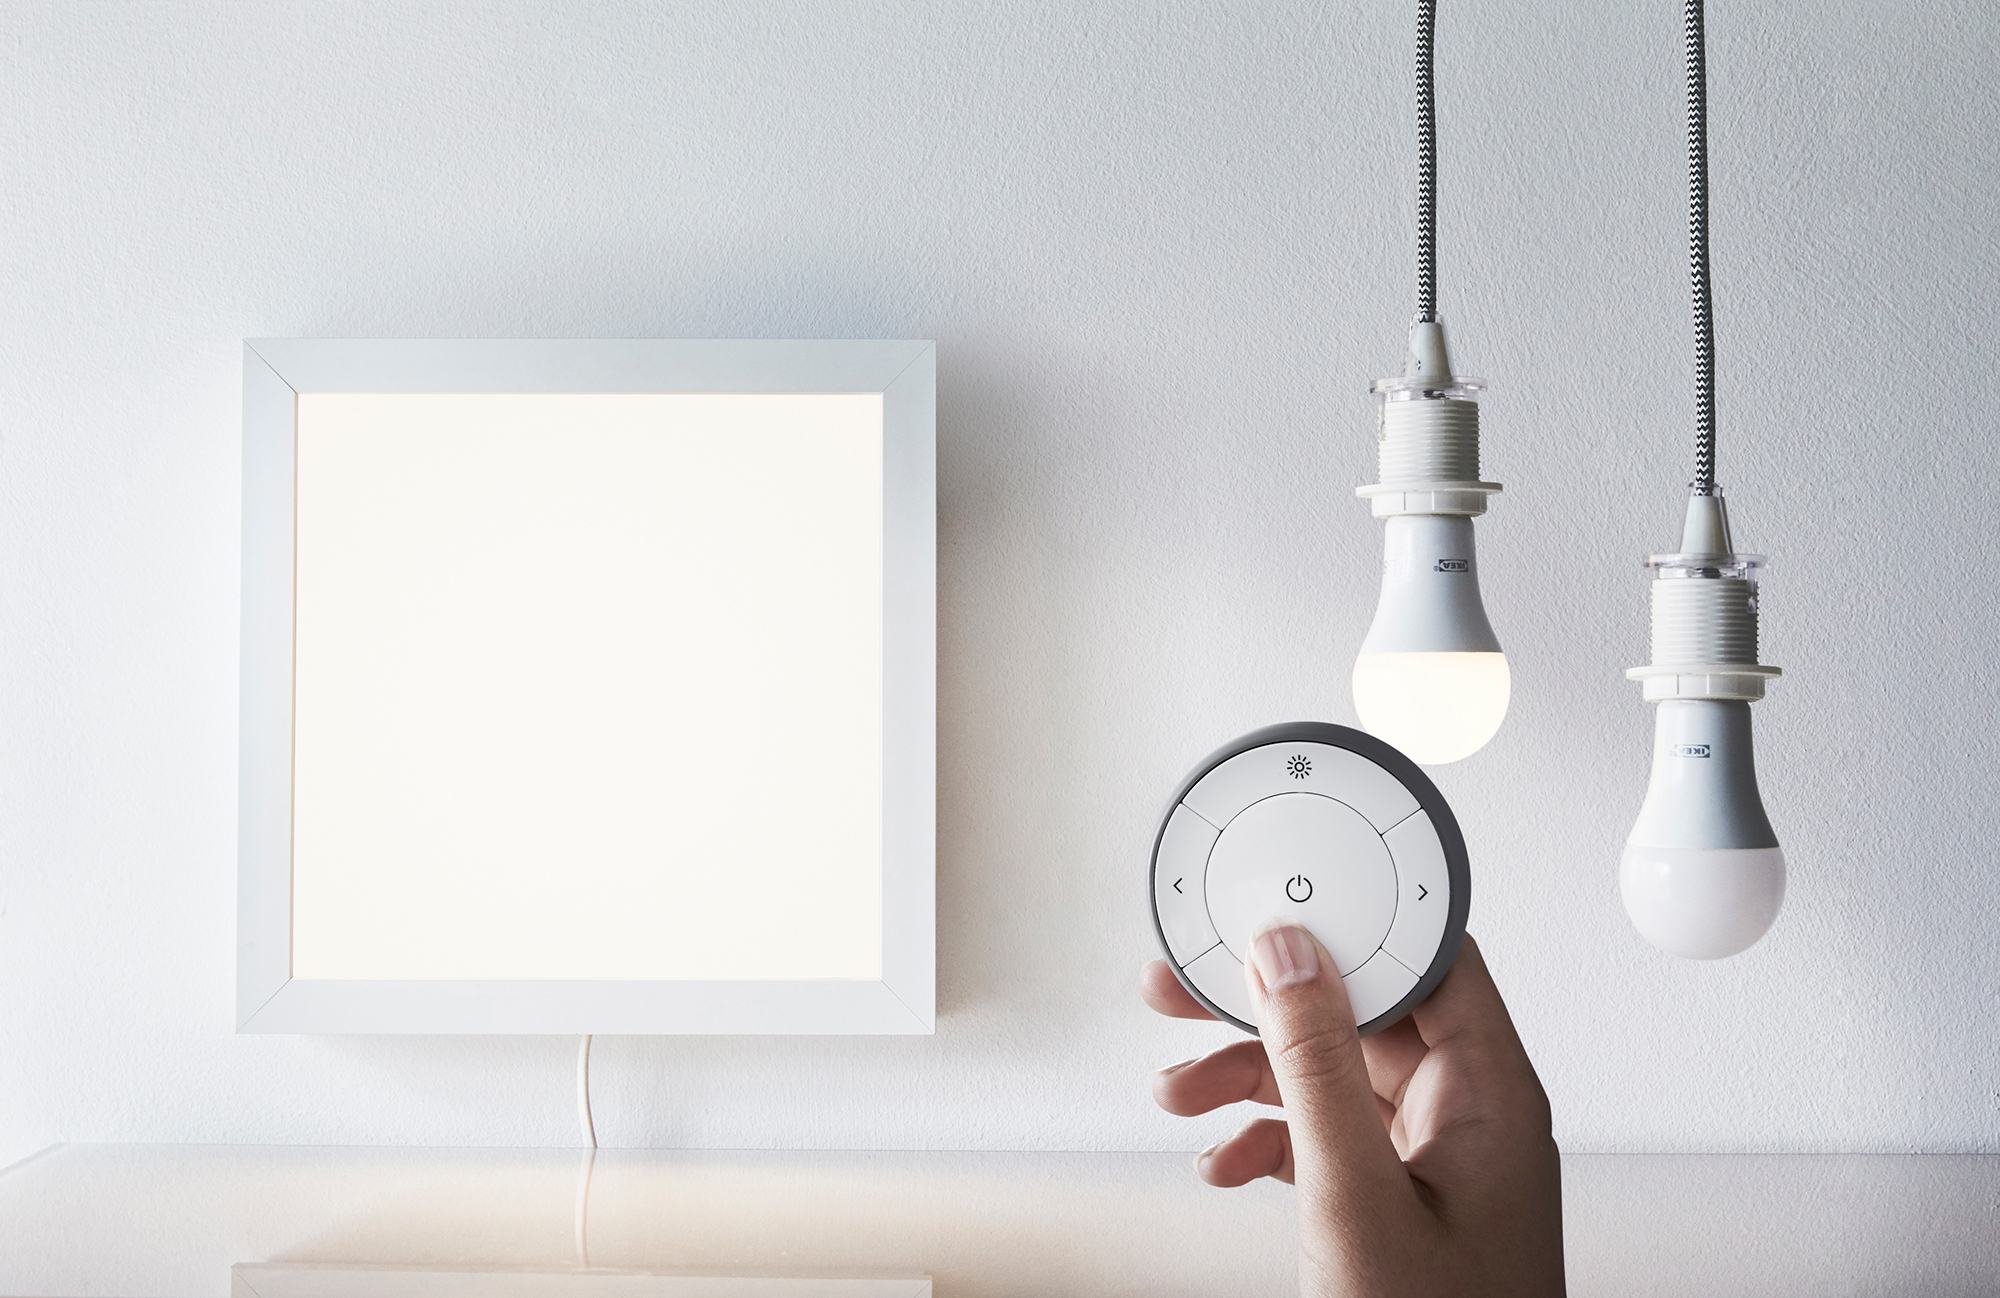 Ikea Smart Lighting Will Support Apple HomeKit, Alexa, Google Assistant